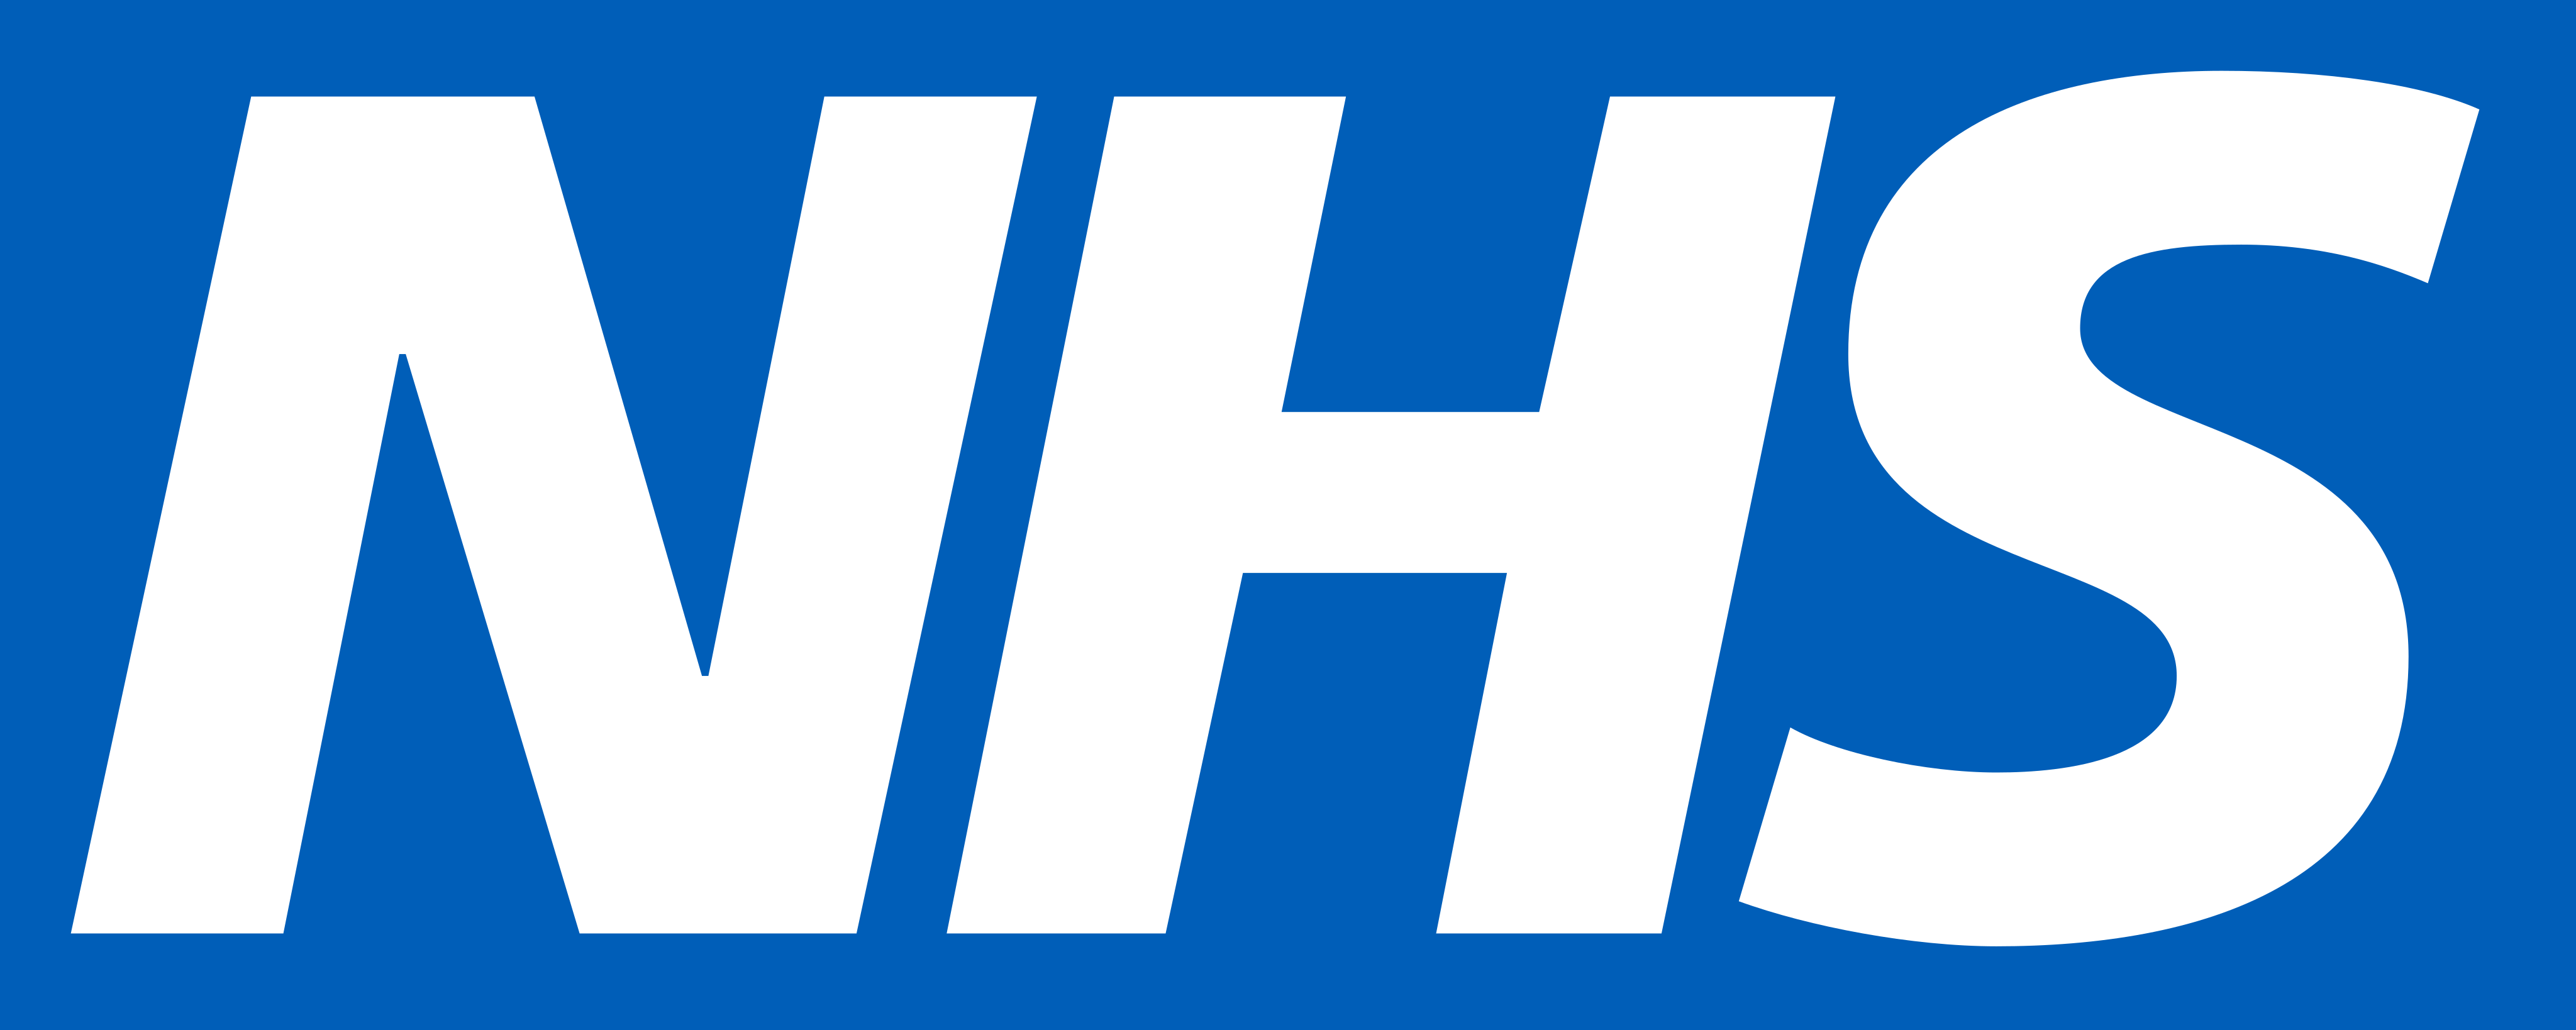 NHS Logo - National Health Service Logo.